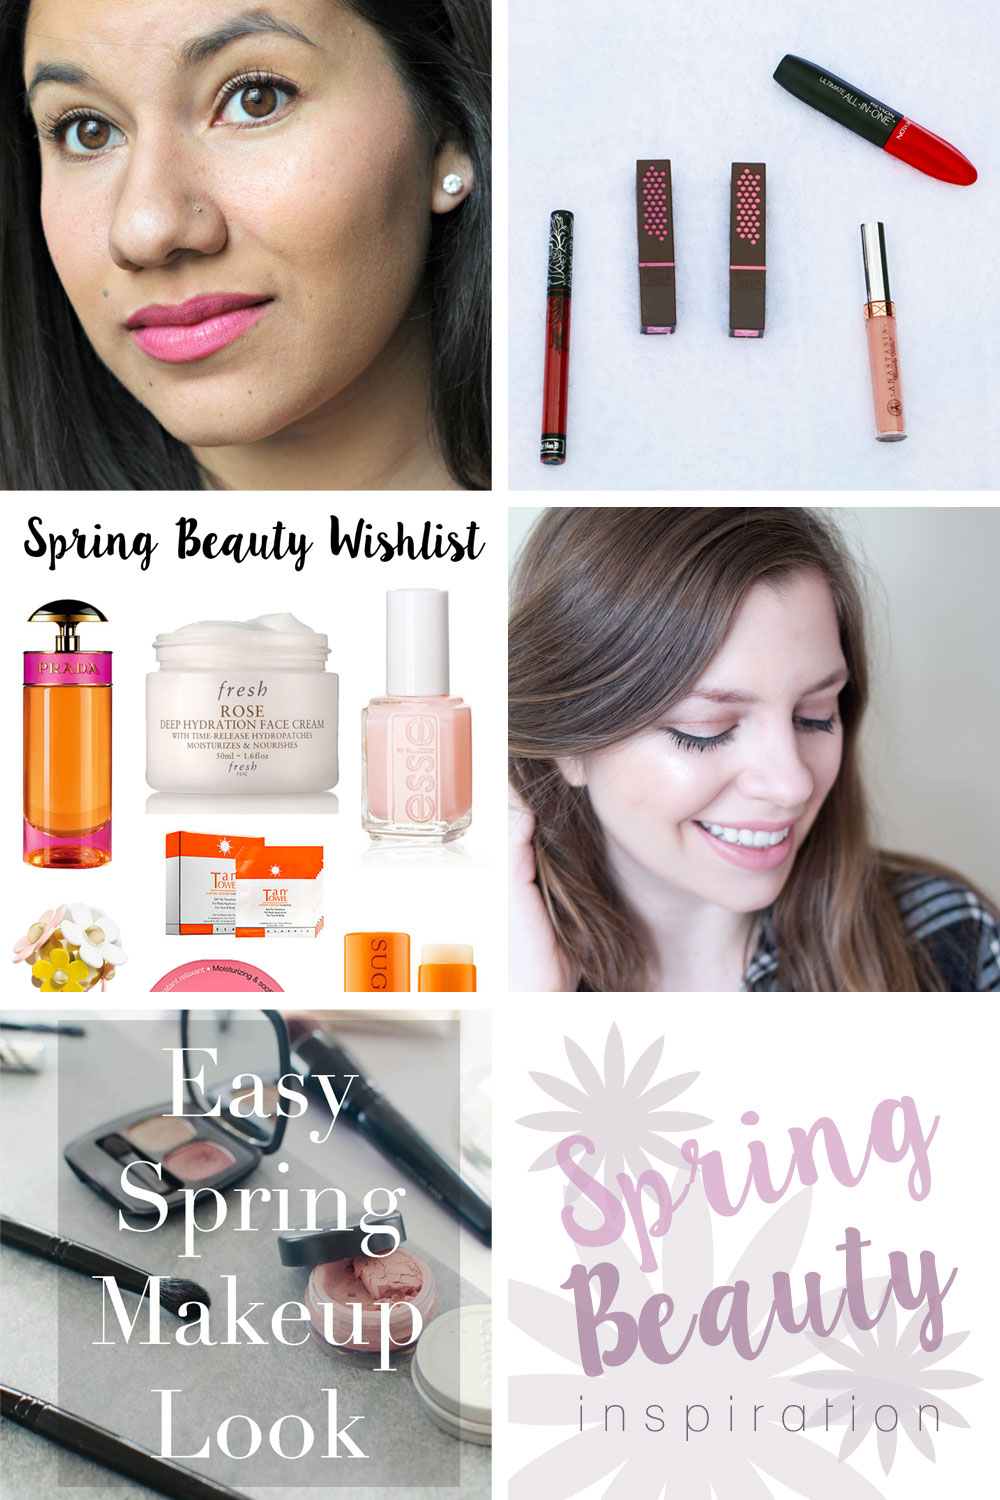 Spring Beauty Inspiration Collage // Hello Rigby Seattle Beauty & Fashion Blog